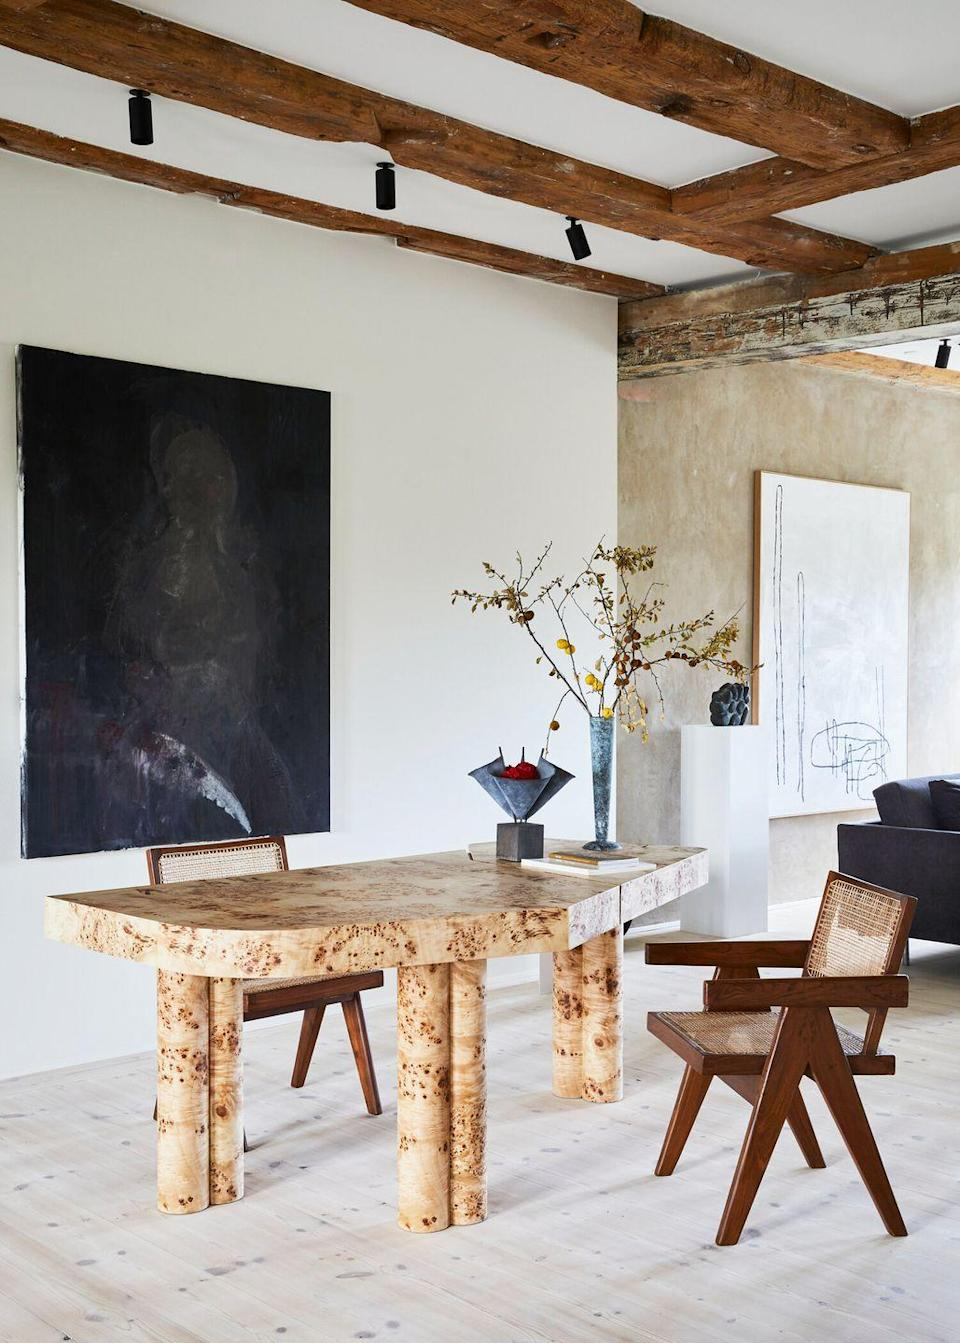 <p>Install track lighting to clear up space on the desk that you'd use for task lighting so you can really spread out as you work. We love how the rustic farmhouse bones of the space feel like a natural fit with the rest of the environment even though the furniture and artwork are super modern. This is thanks to the organic materials, like burled wood and rattan. </p>